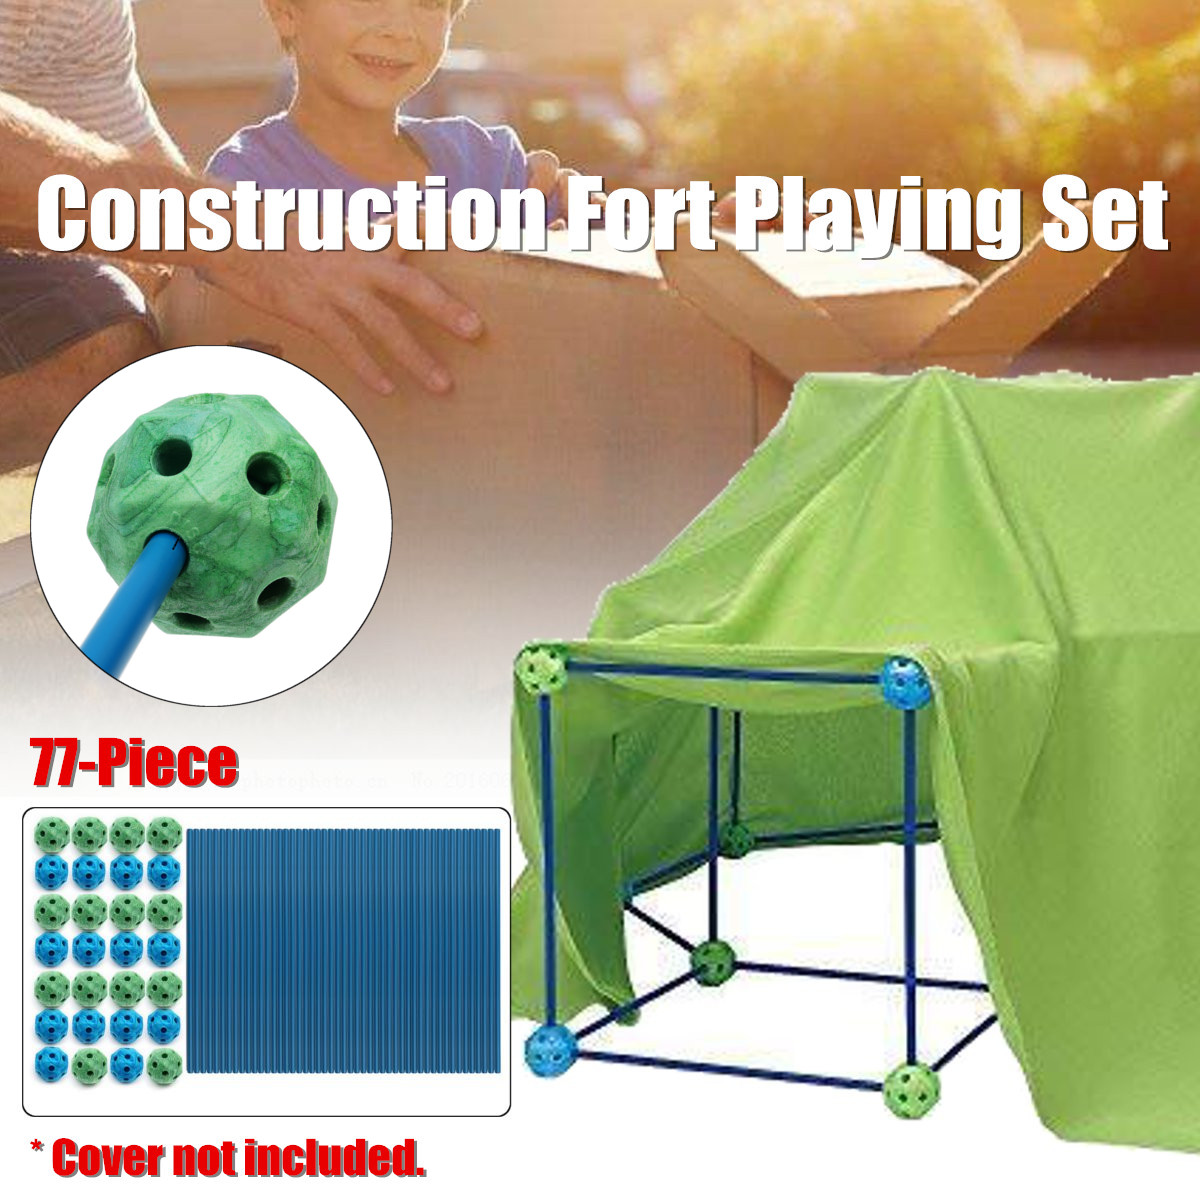 Baby 72 Piece Build Construction Fort Toy Tents for Kids Castle Play Tent House Furniture Children Enfant Room Play Toys PoolBaby 72 Piece Build Construction Fort Toy Tents for Kids Castle Play Tent House Furniture Children Enfant Room Play Toys Pool